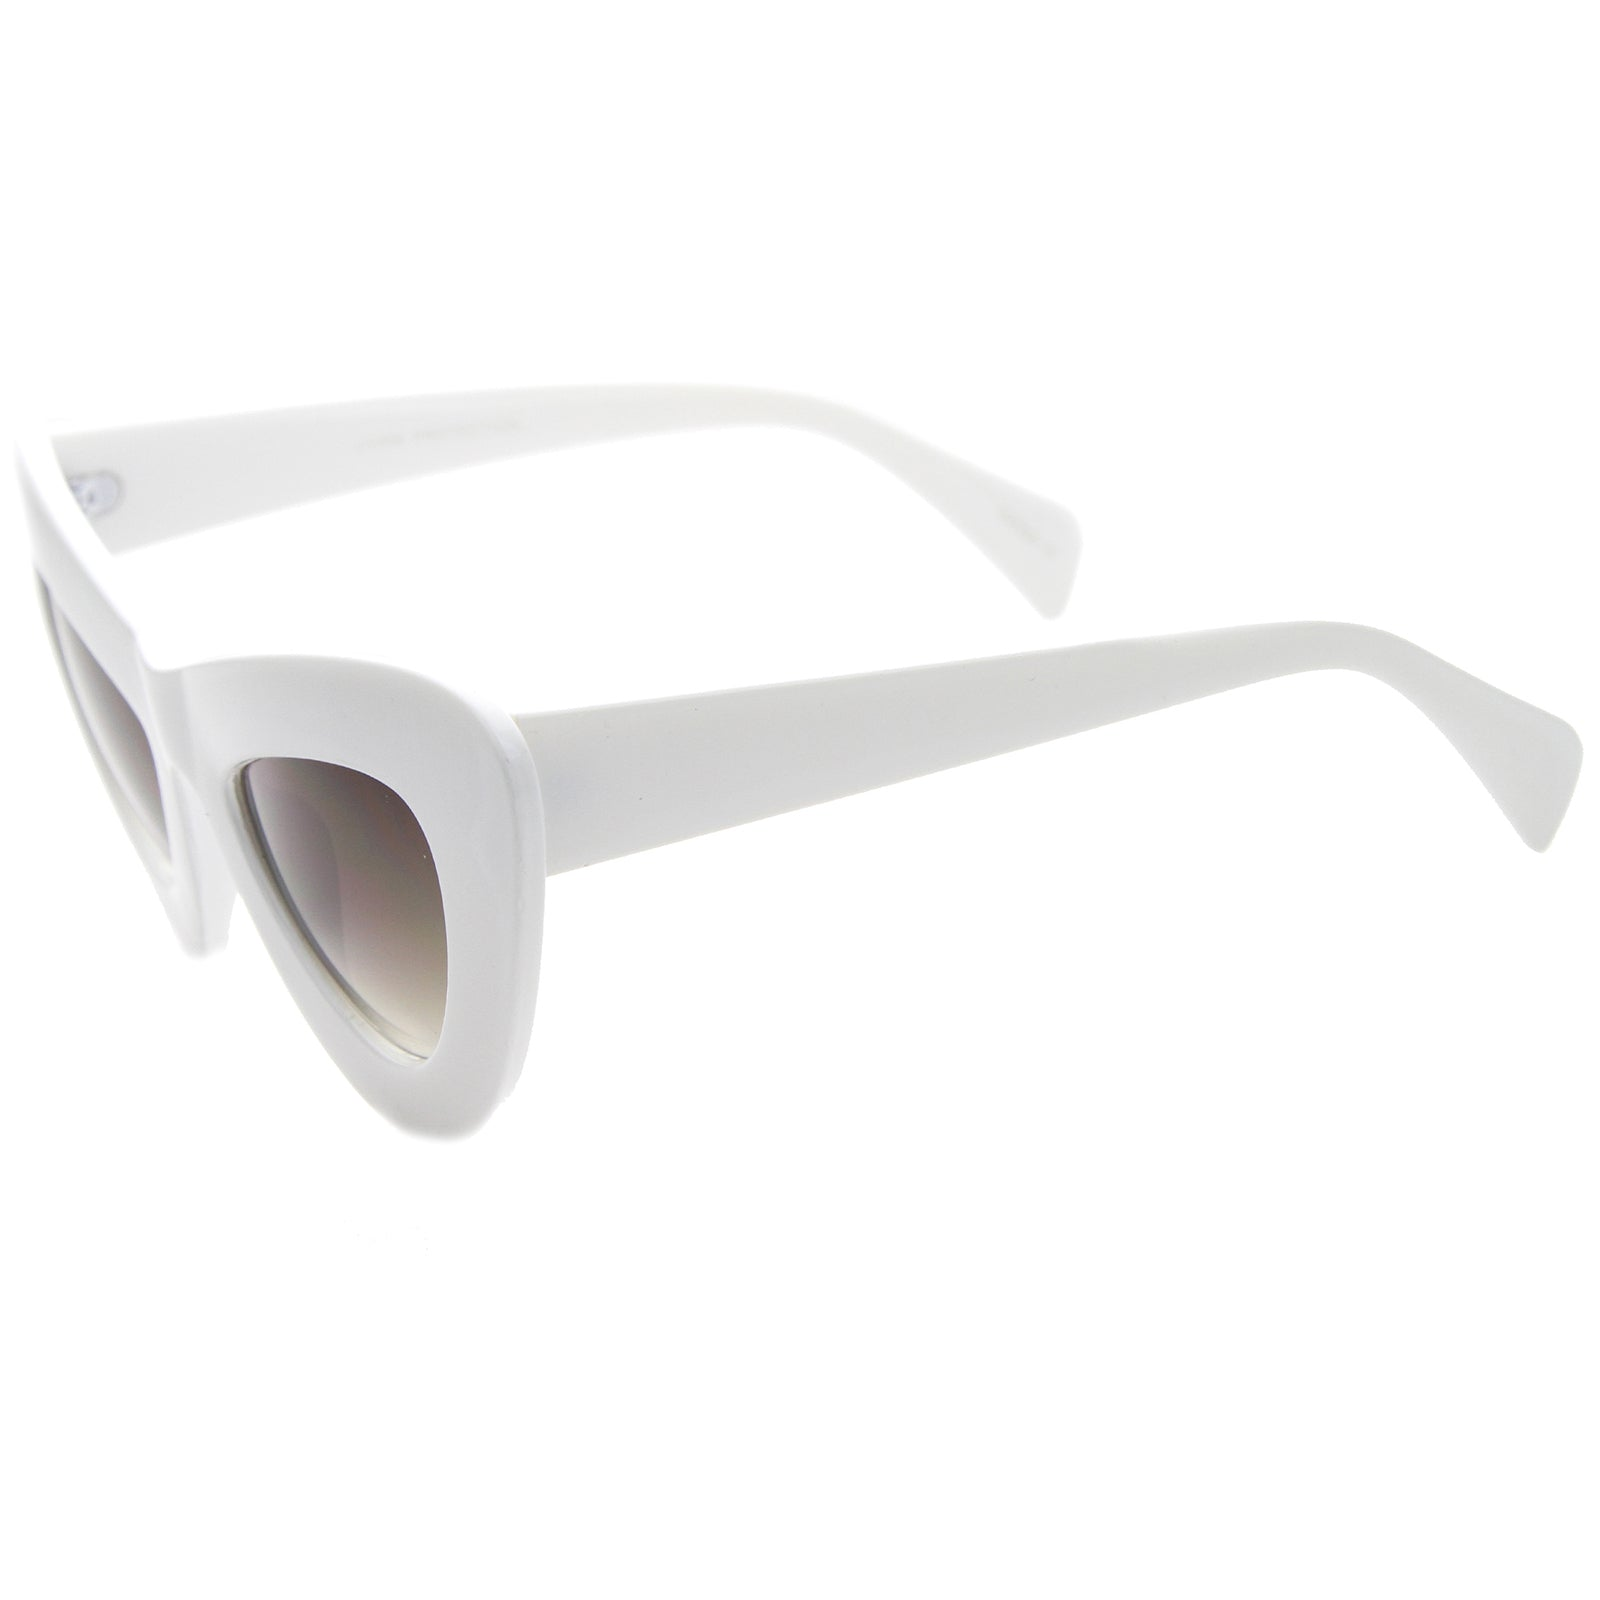 Womens Cat Eye Sunglasses With UV400 Protected Composite Lens - sunglass.la - 7